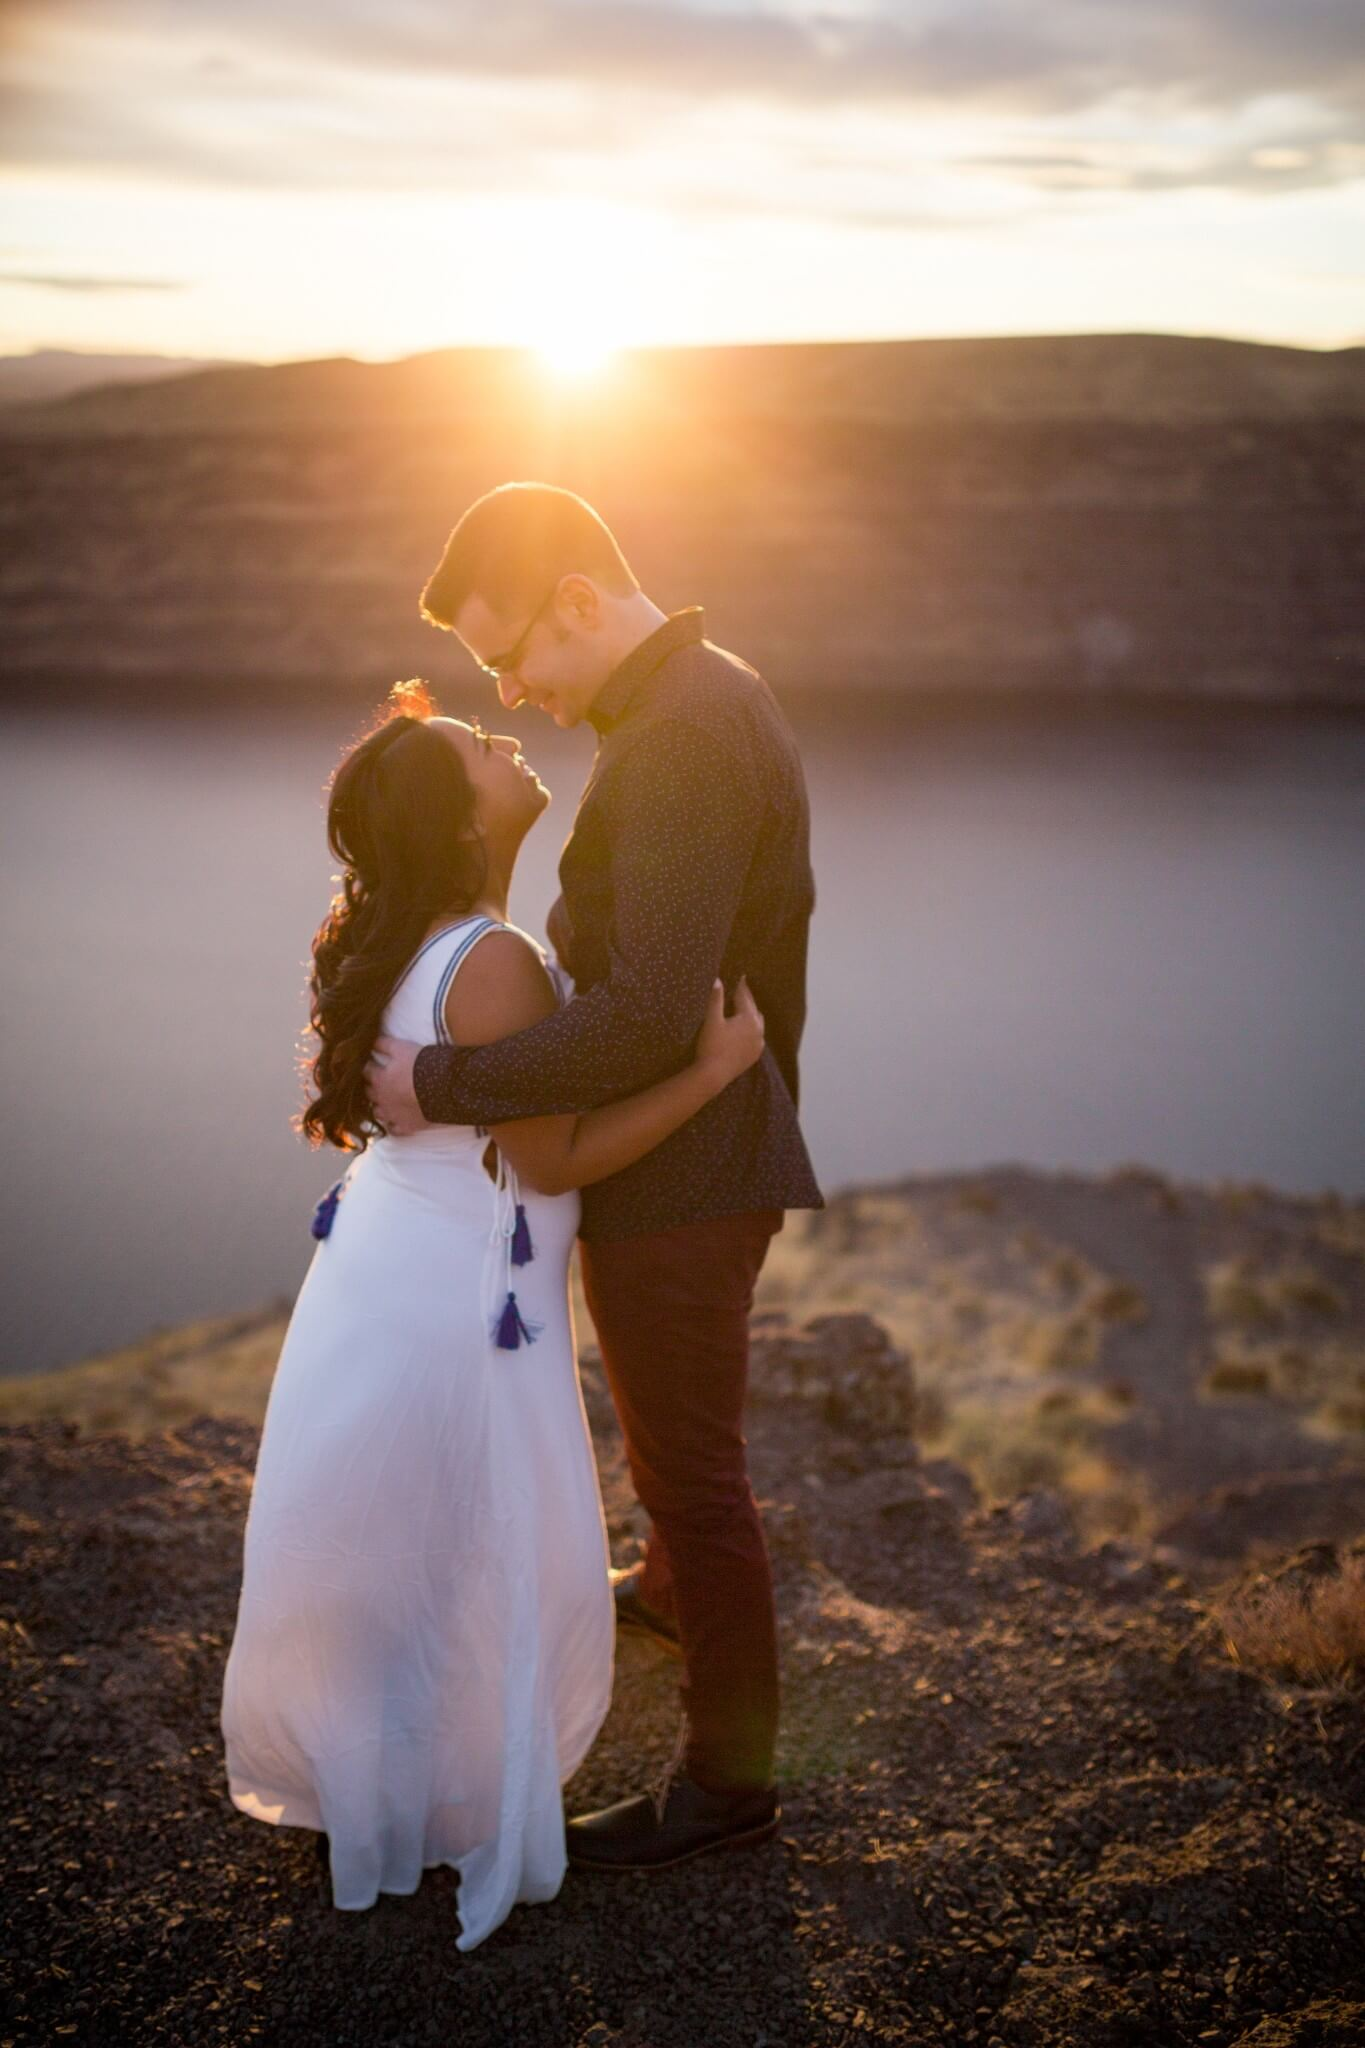 Lesly & Michael Vantage Engagement by Bill Weisgerber Spokane Photographer (58 of 71).jpg